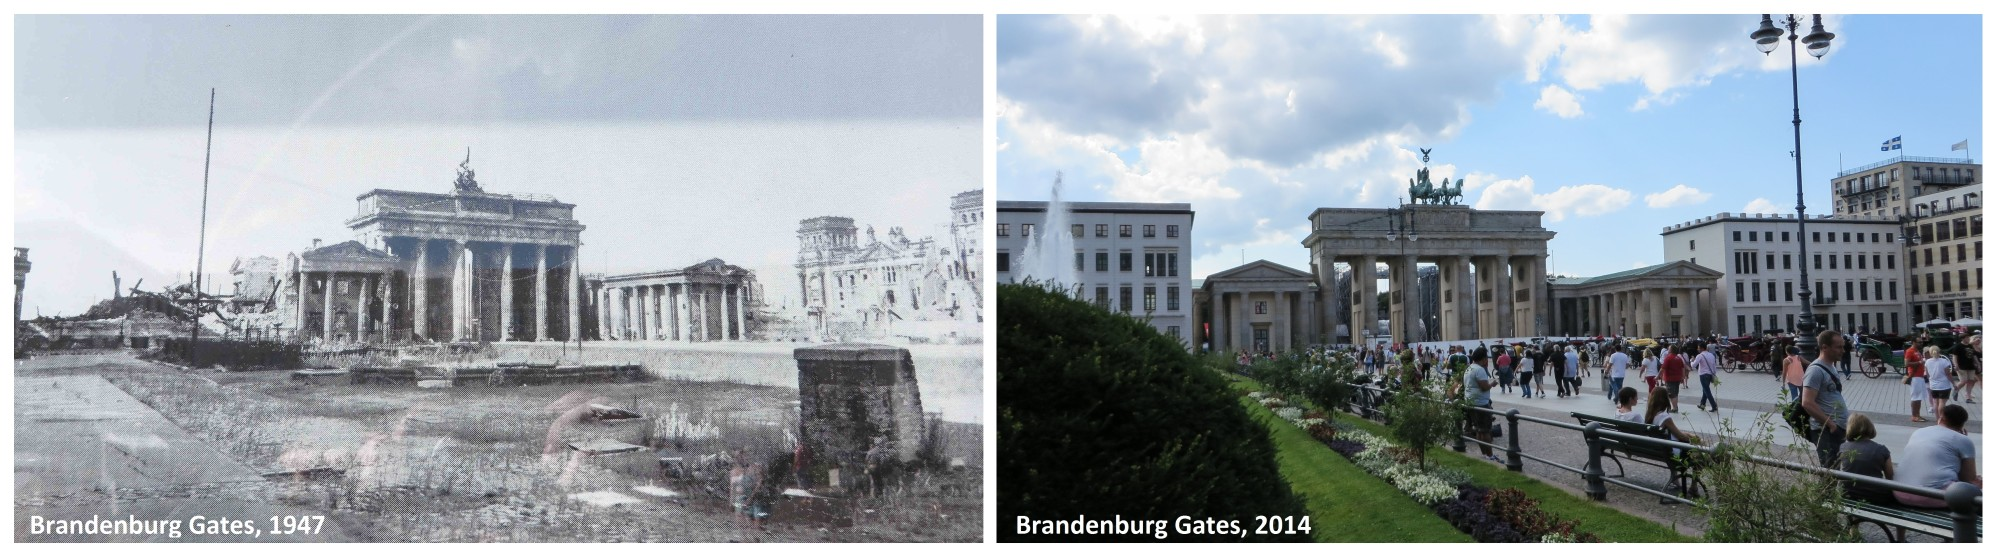 Brandenburg Gate post-WWII and today